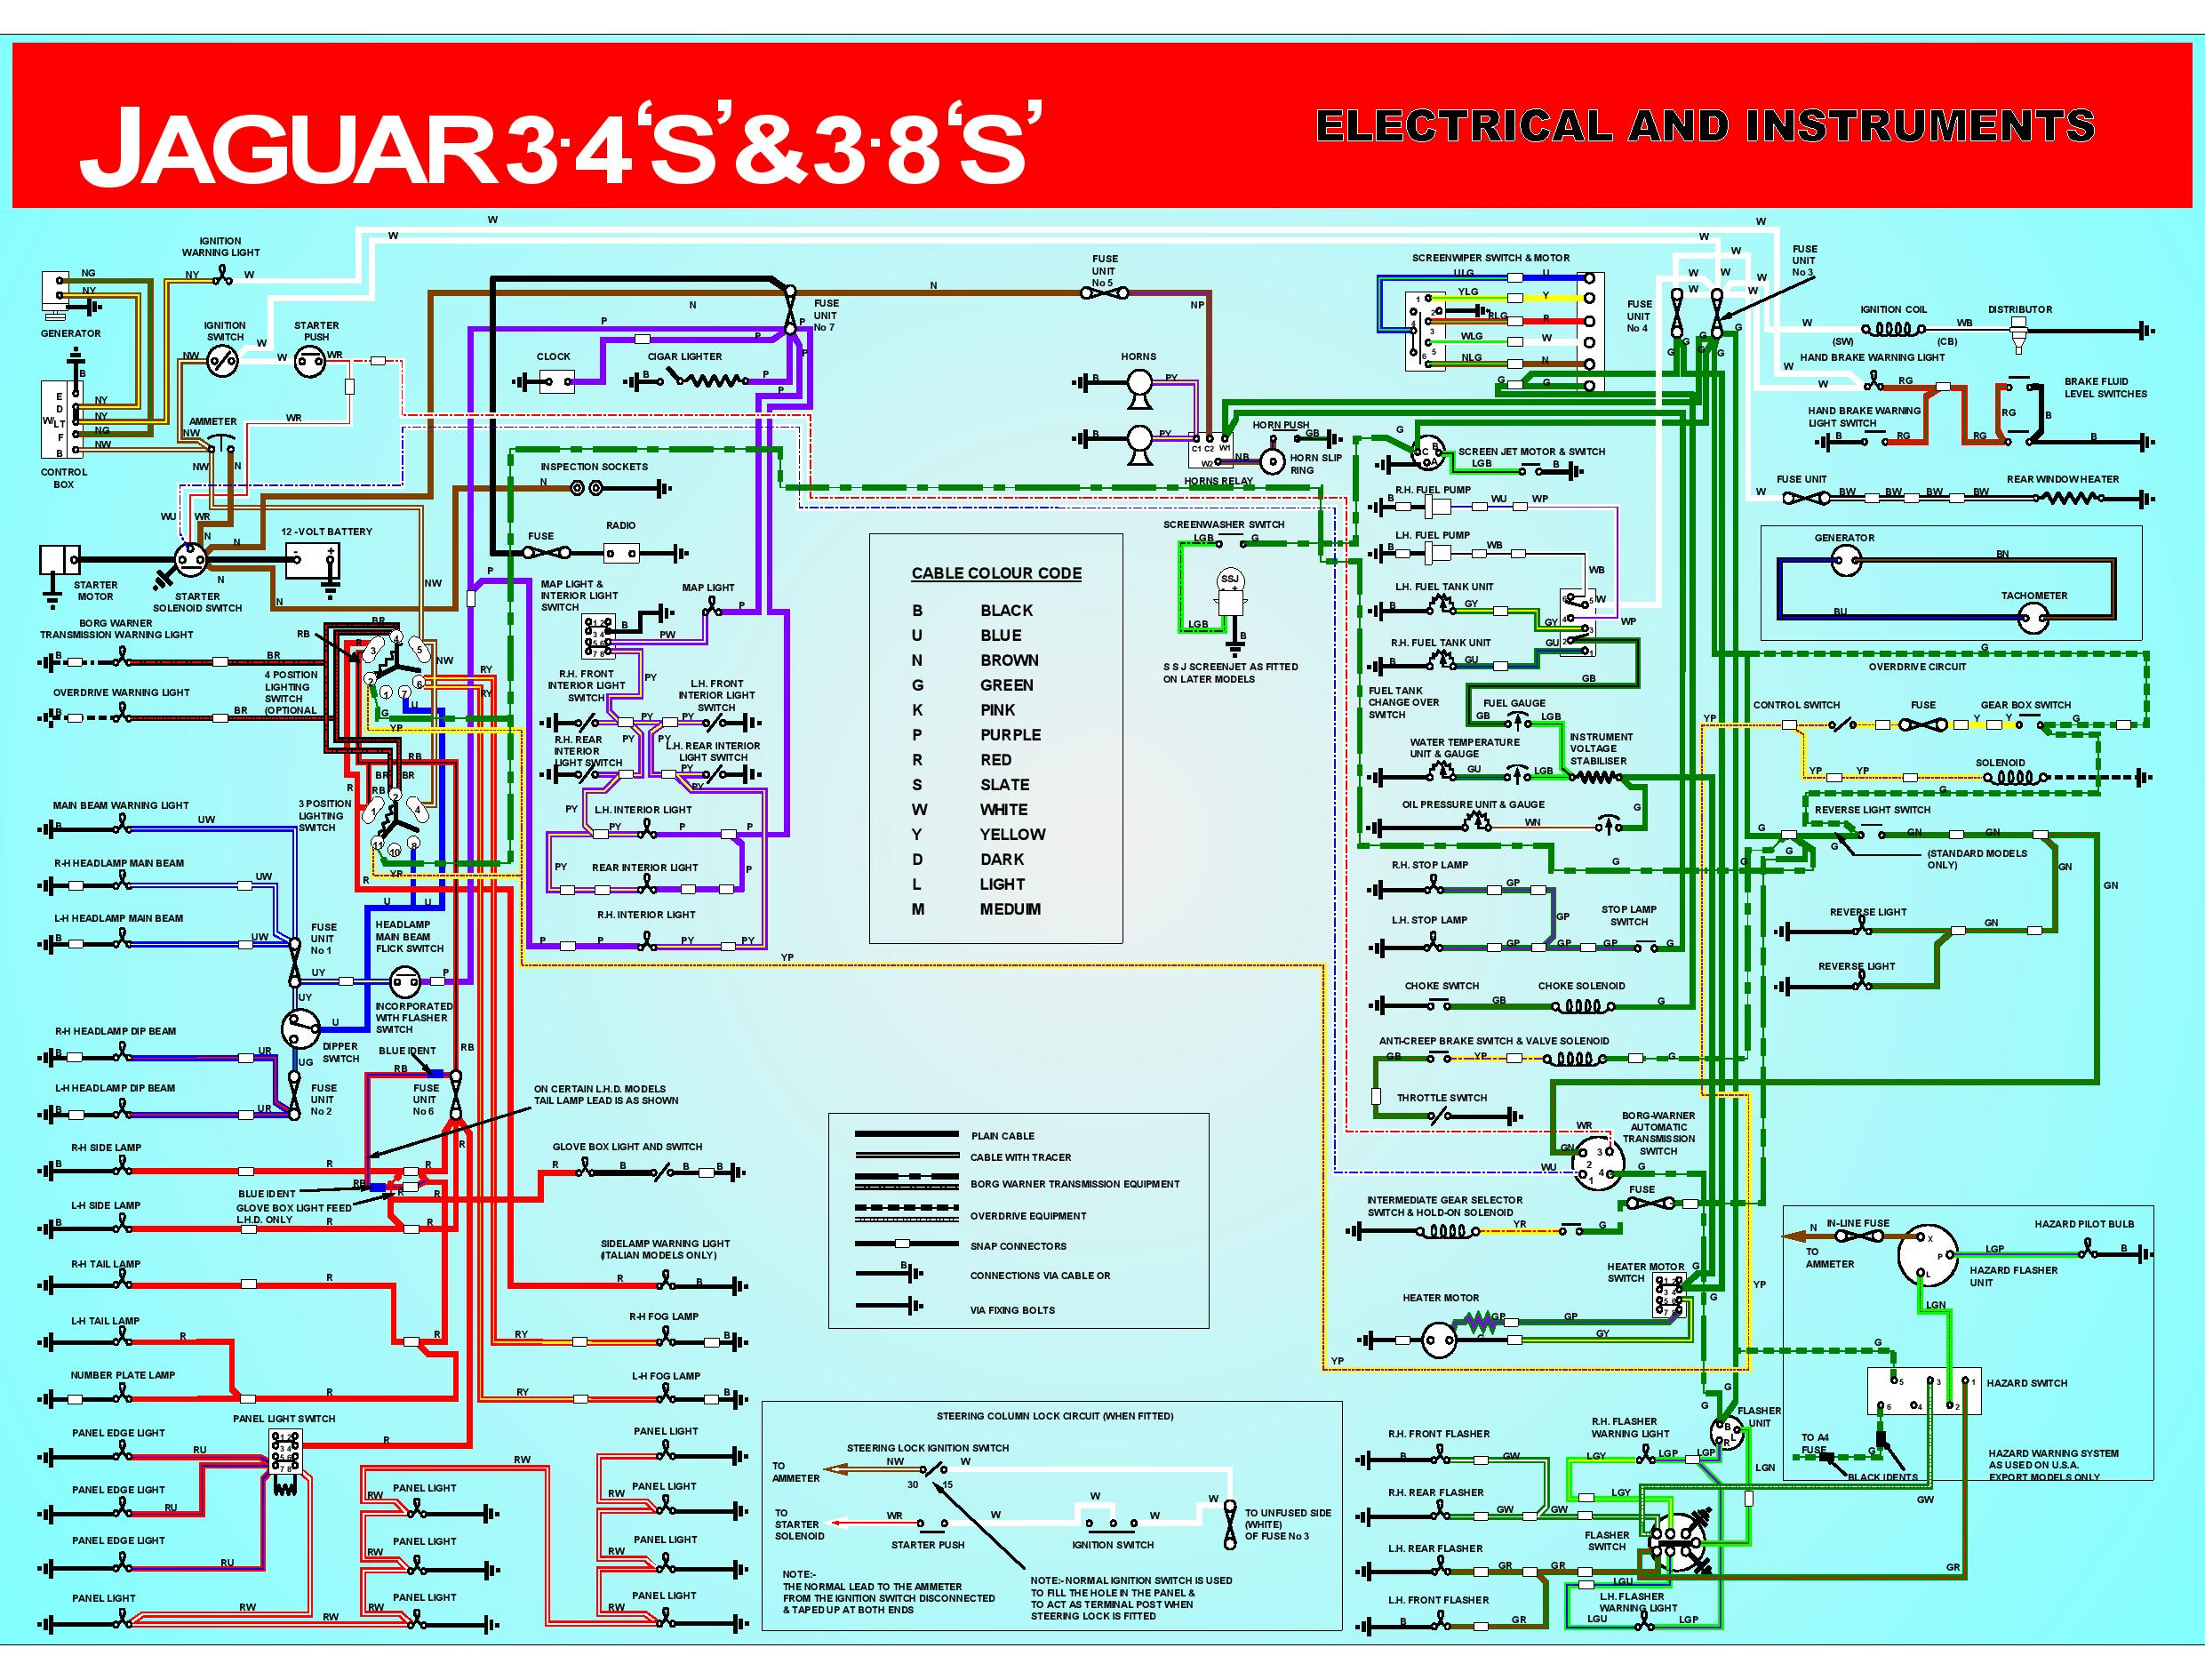 S type wiring page jaguar s type wiring diagram jaguar s type tow hitch wiring jaguar electrical diagrams at panicattacktreatment.co